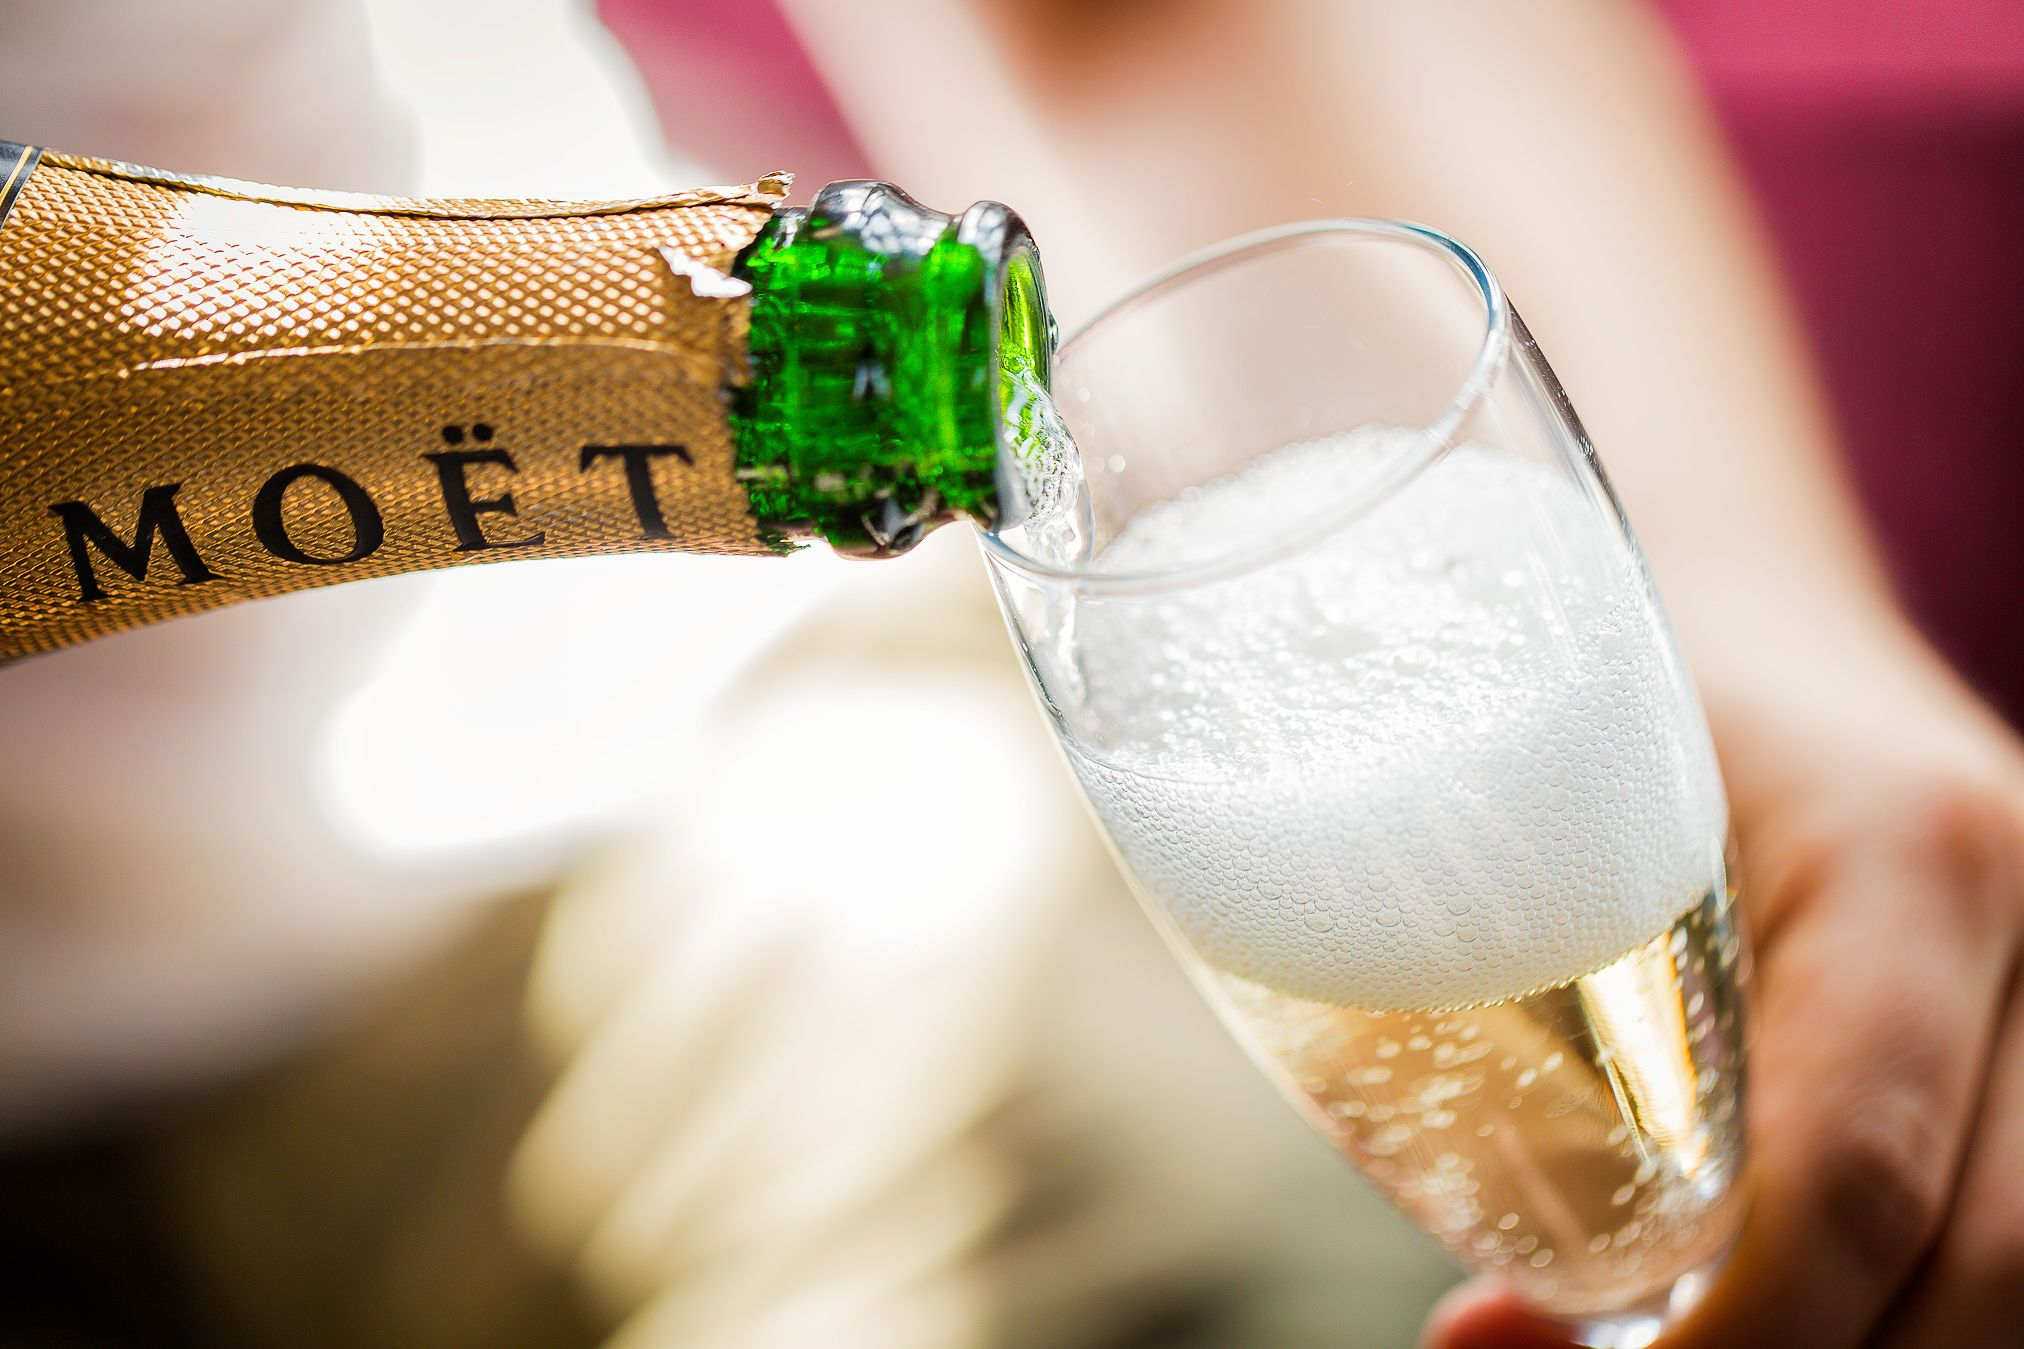 Moet champagne being poured into a champagne glass